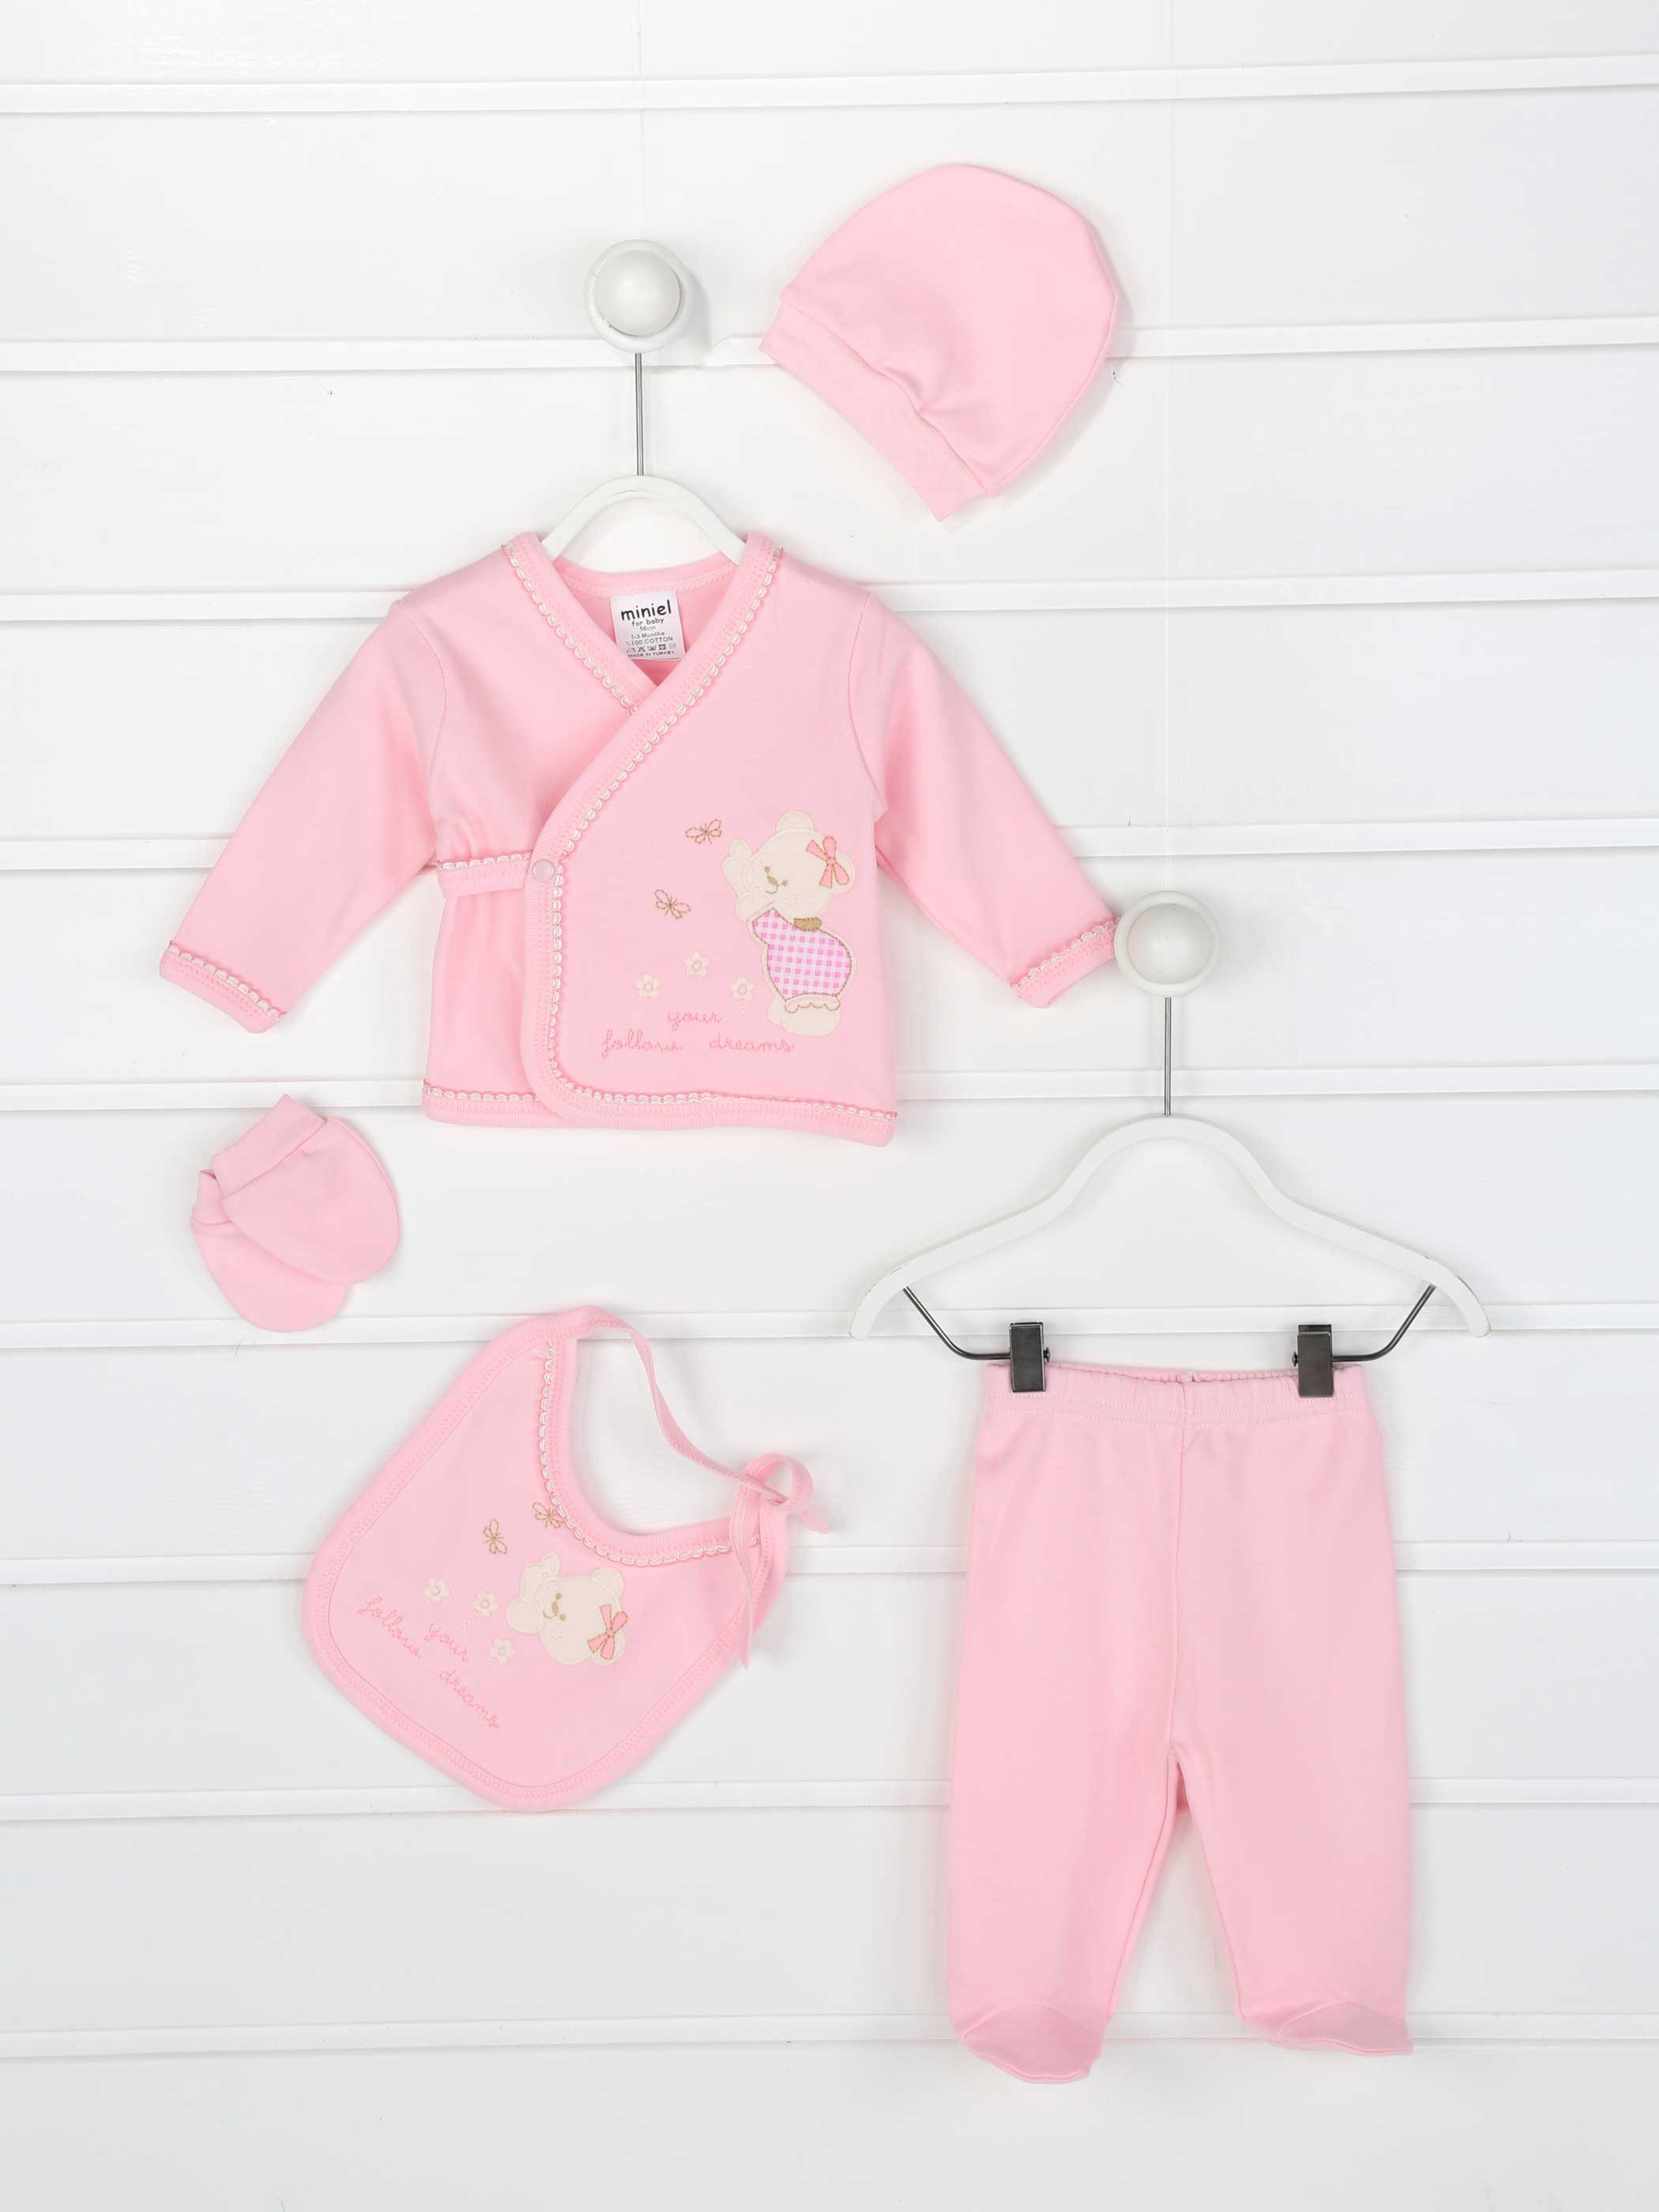 Baby Suits Girls Boys Newborn Clothes 5 Pcs Set Casual Cotton Antiallergic Fabric Newborn Babies Clothing Models